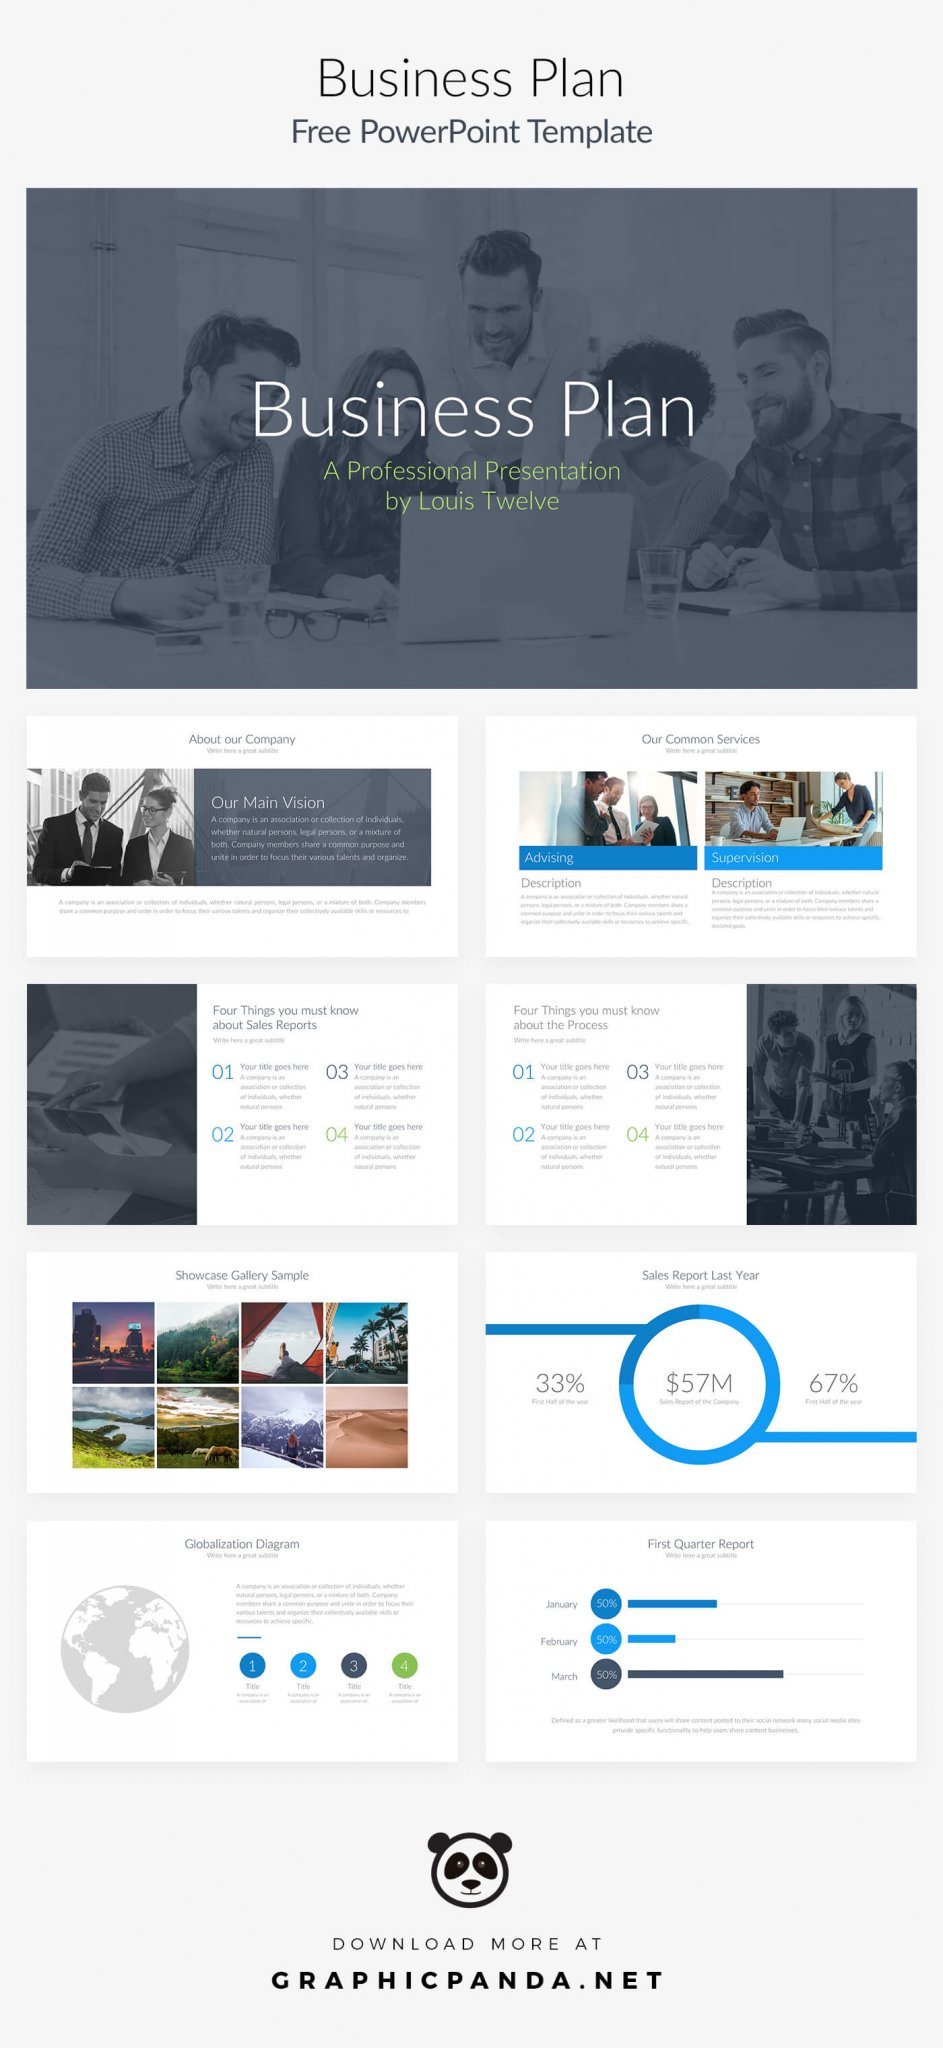 Free business plan powerpoint presentation template business plan free powerpoint themes powerpoint templates cheaphphosting Images